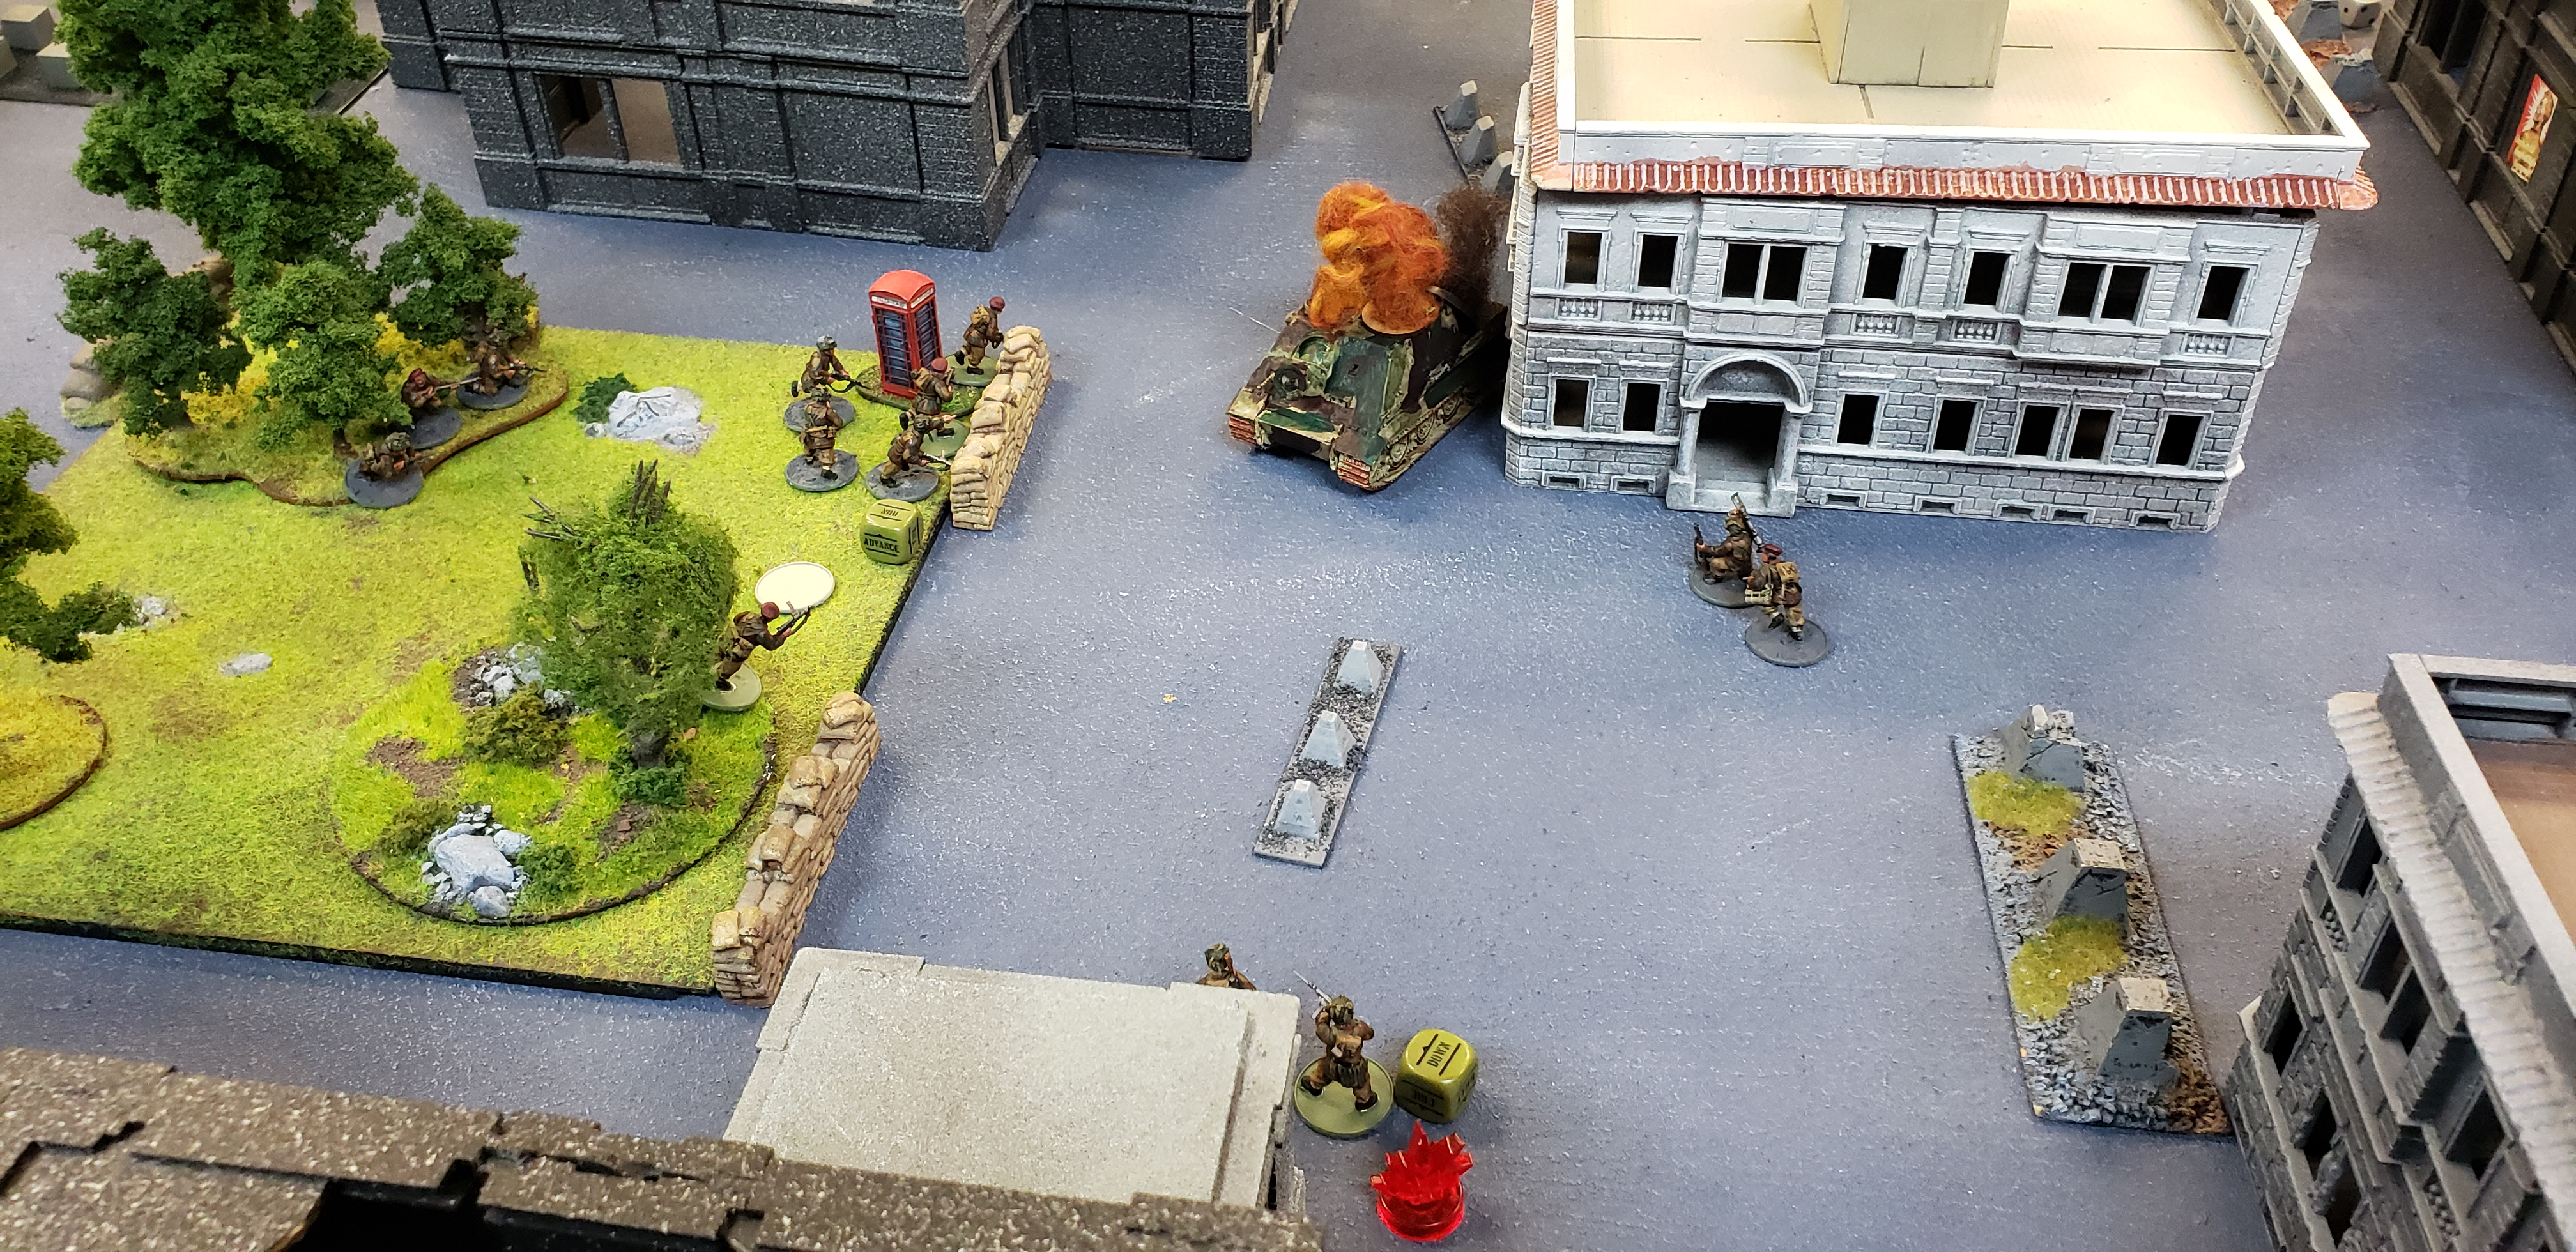 The Hounds versus Kampfgruppe Reichardt in a fierce infantry engagement